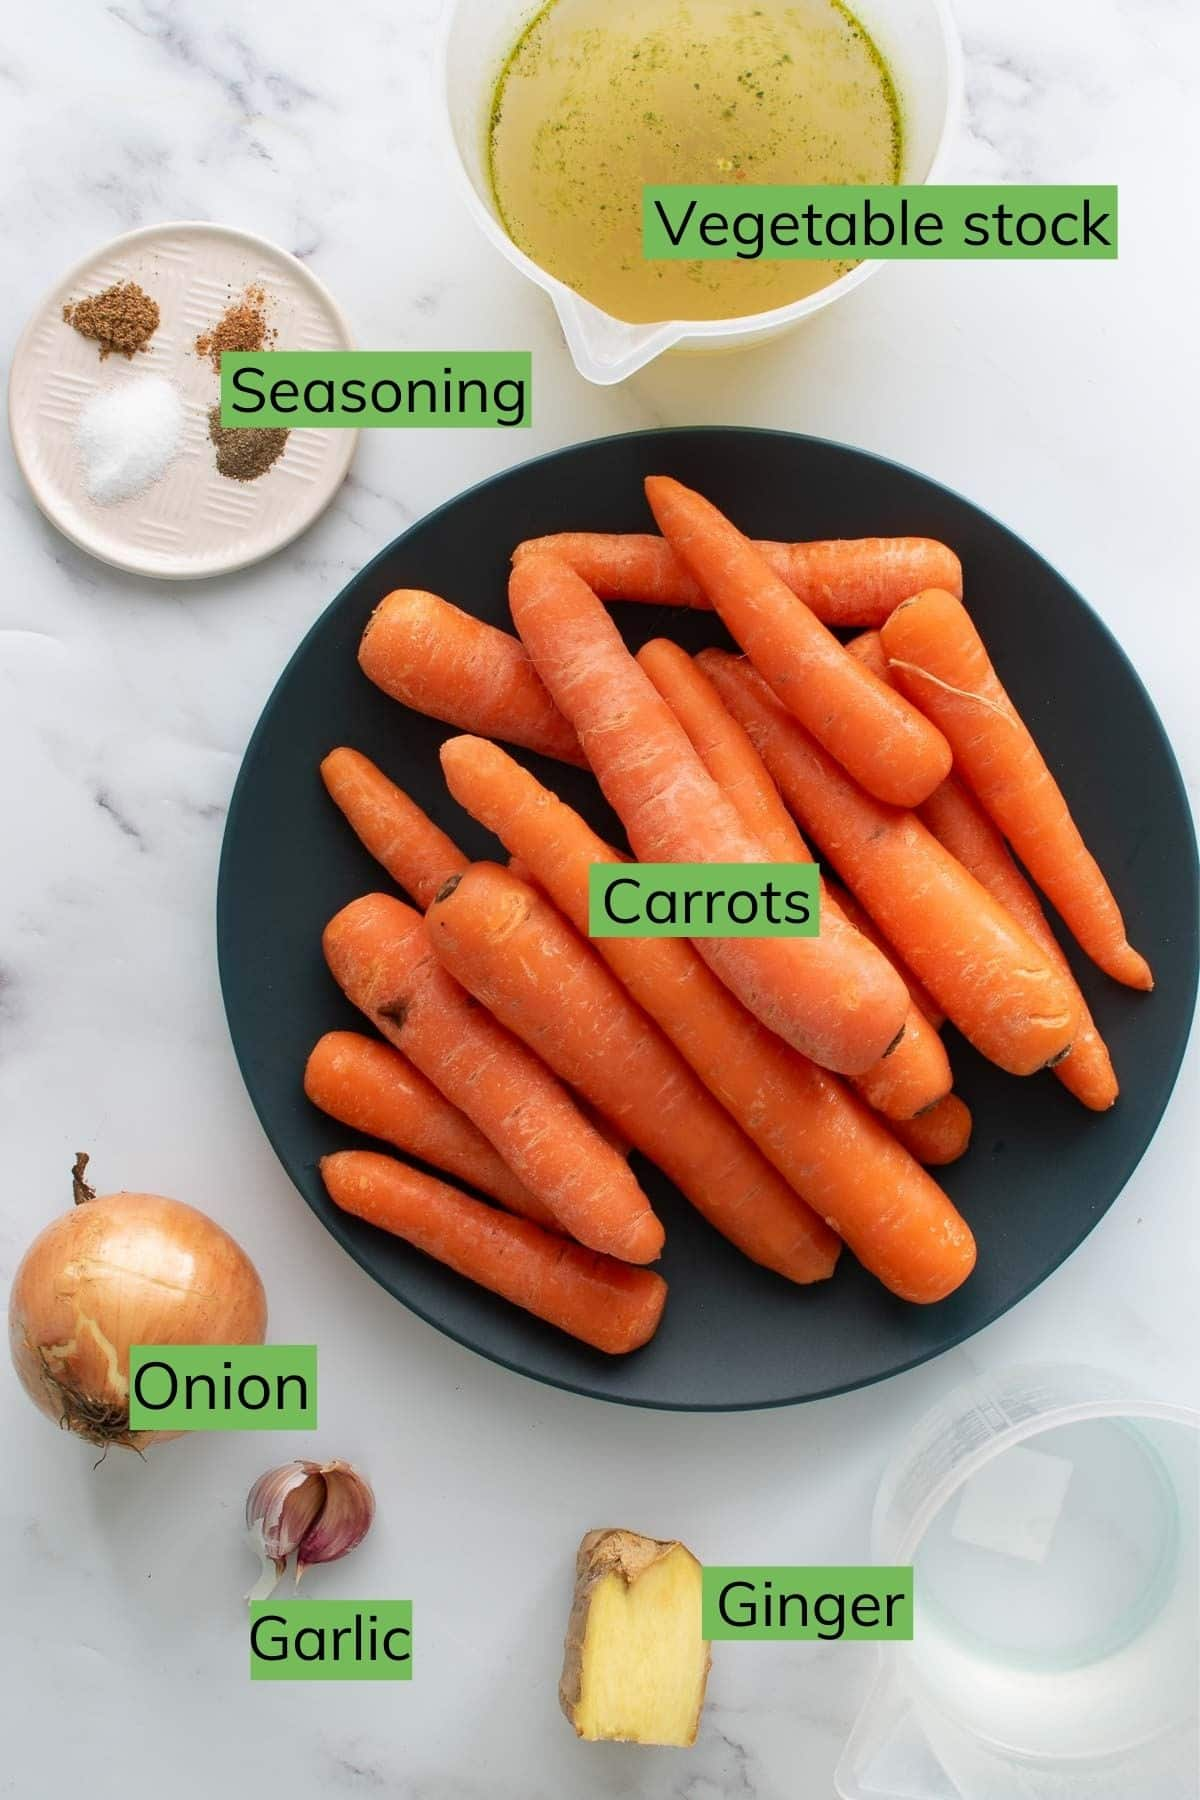 The ingredients needed to make carrot and ginger soup laid out on a table.